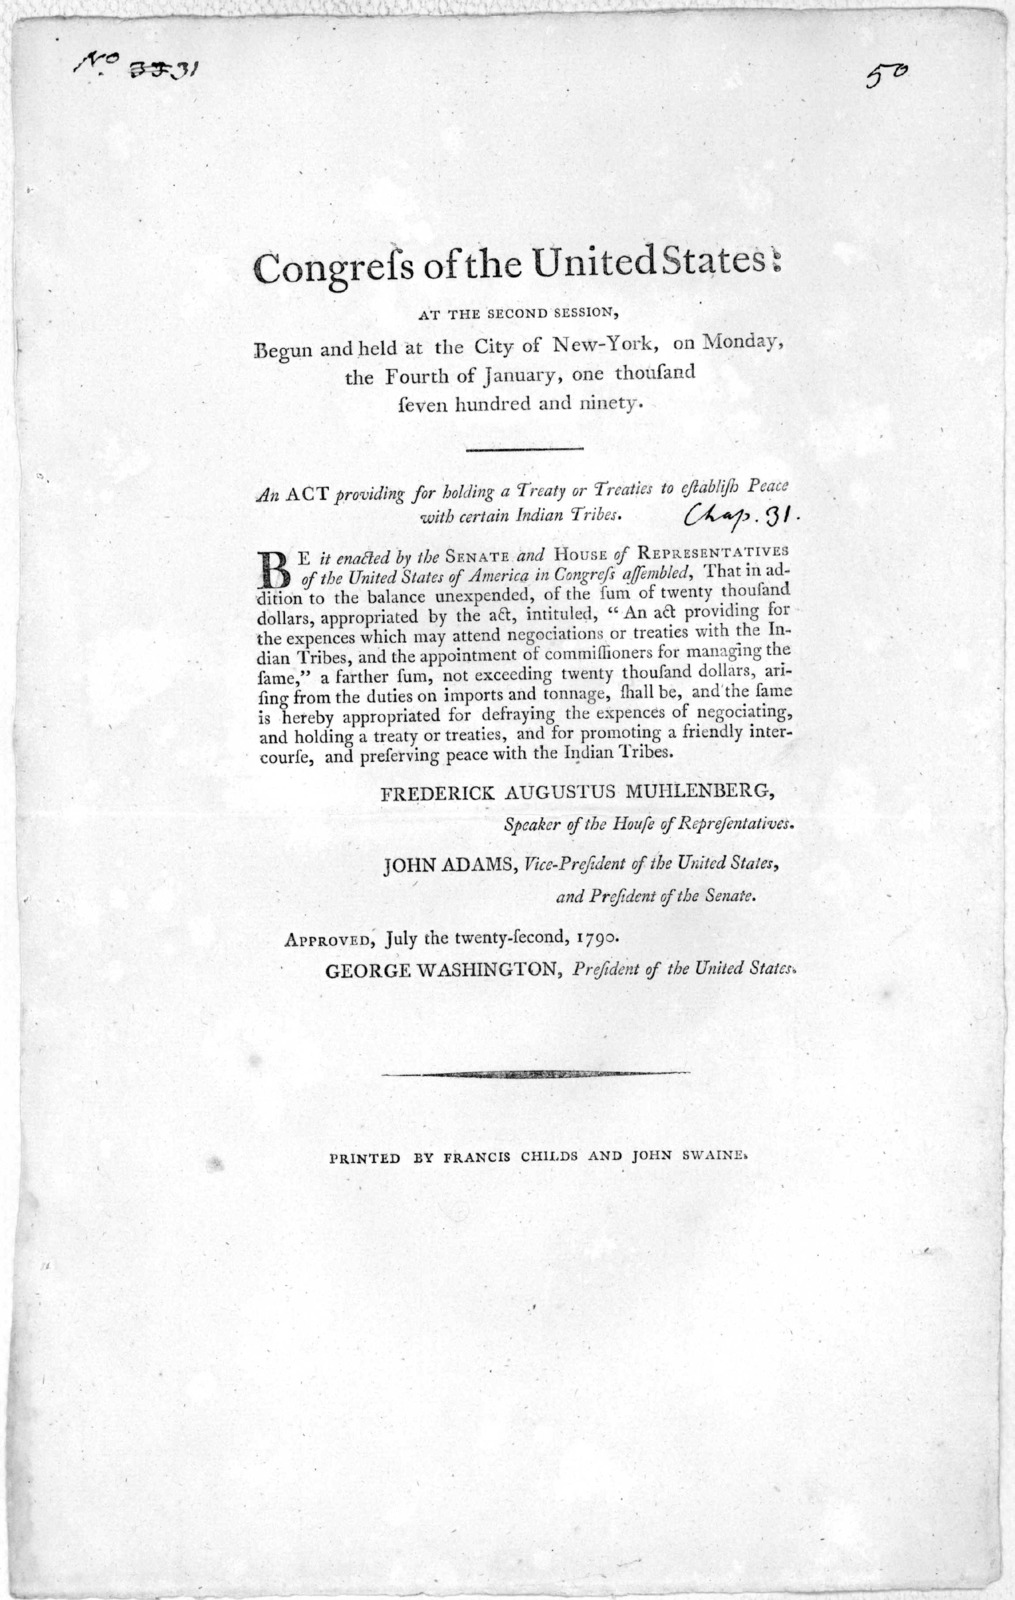 ... An act providing for holding a treaty or treaties to establish peace with certain Indian tribes. [New York] Printed by Francis Childs and John Swaine, [1790].